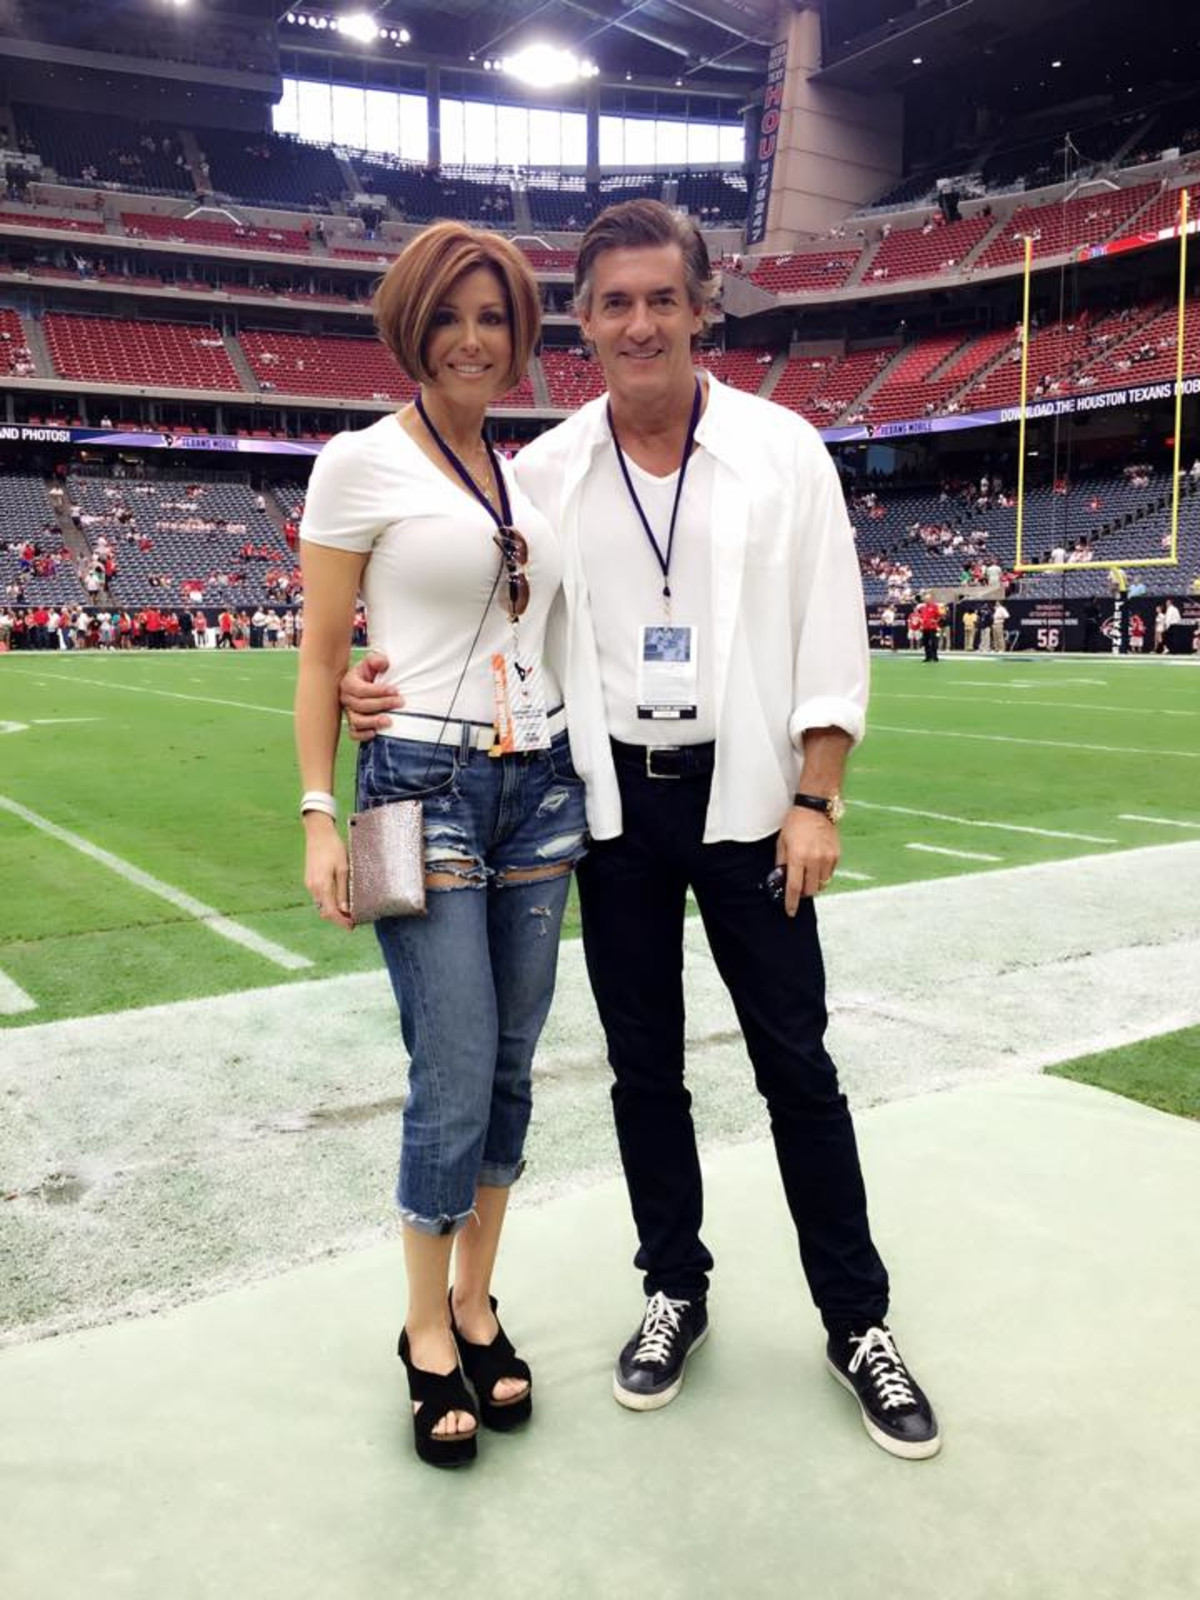 News, Shelby, NRG Stadium, Dominique Sachse, Nick Florescu, Sept. 2015